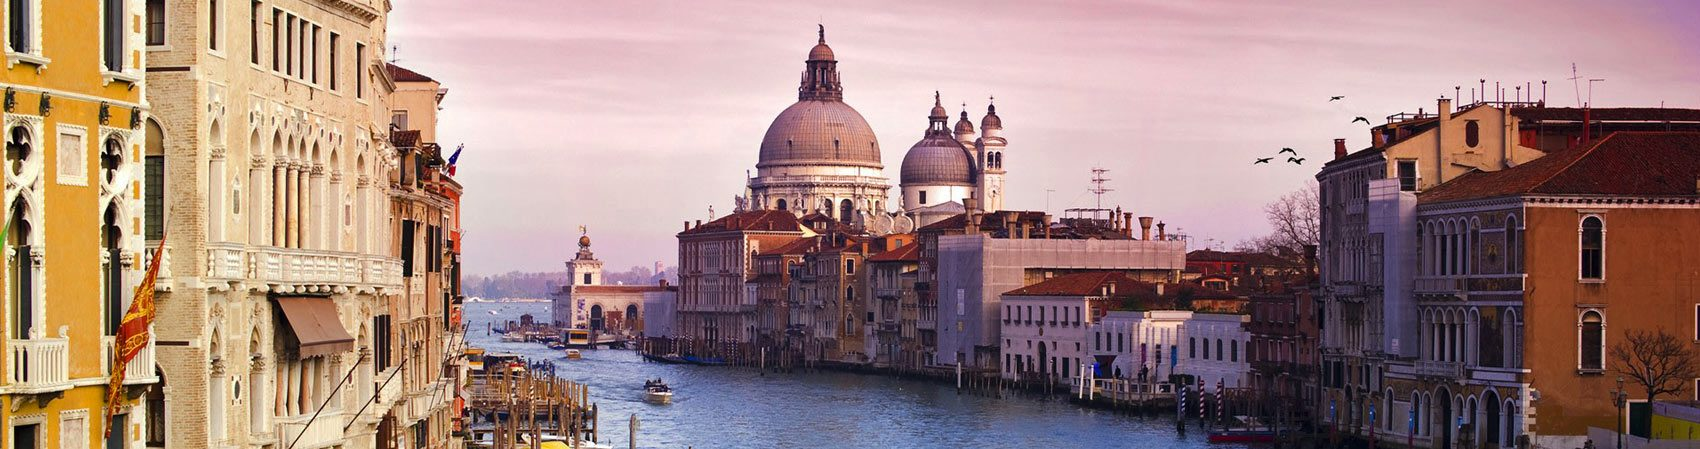 Venice, Italy: Boat Ride on the Grand Canal